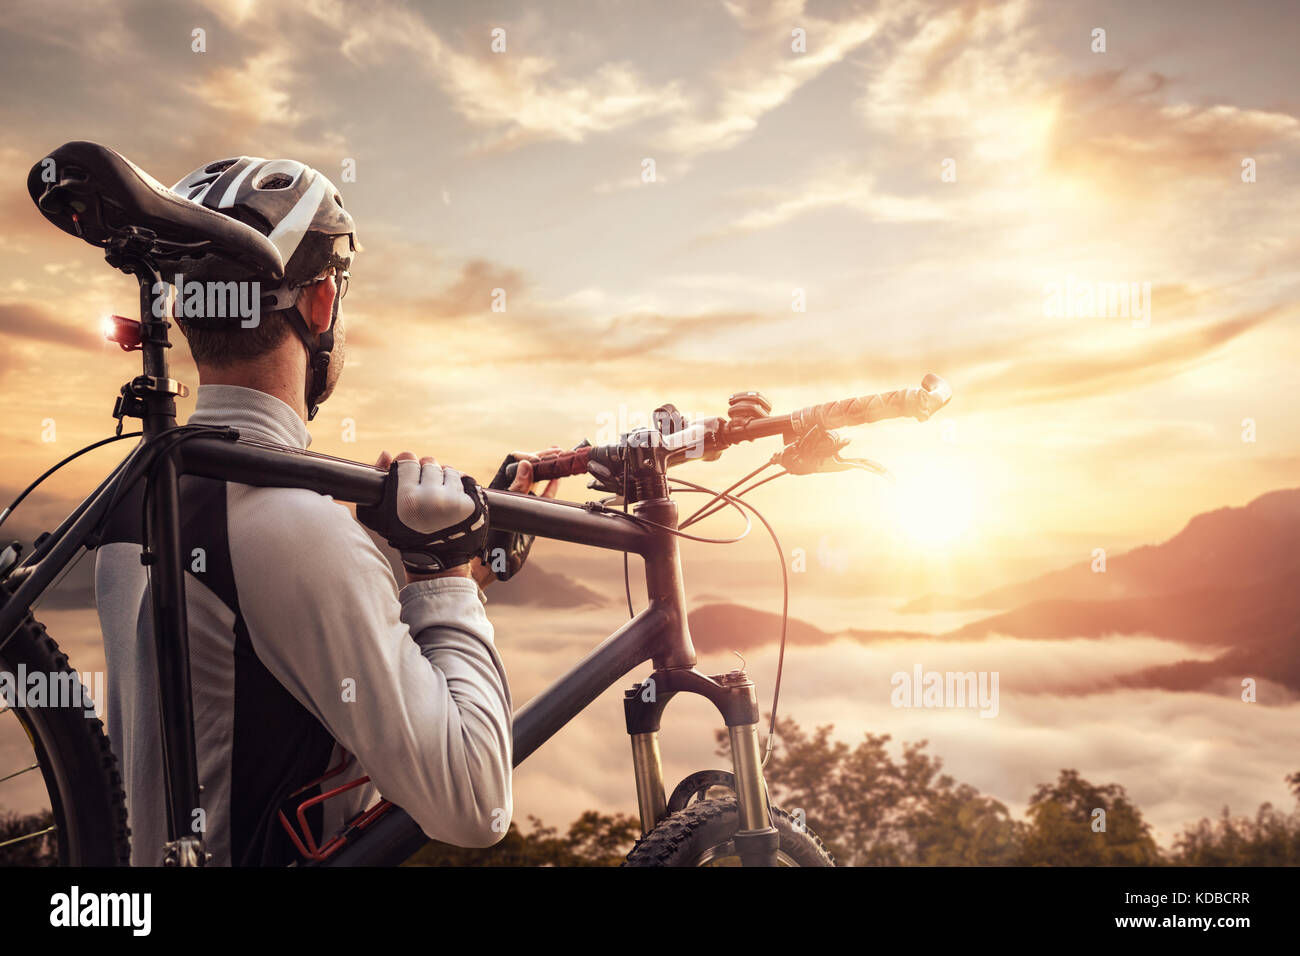 Mountain biker overlooking a valley at sunset - Stock Image